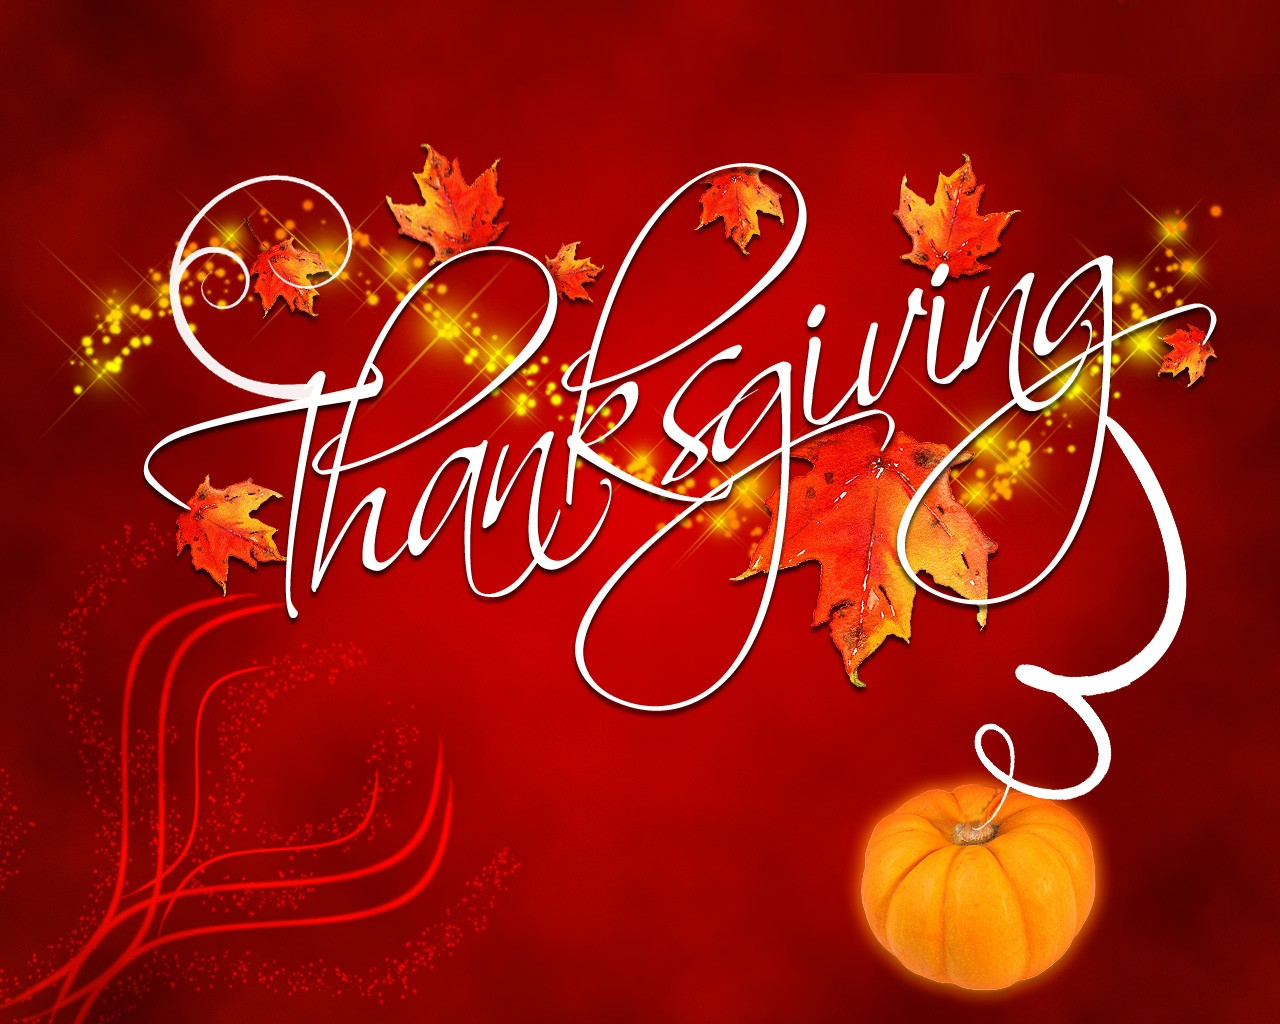 Animated thanksgiving wallpaper backgrounds wallpapersafari - Thanksgiving moving wallpaper ...